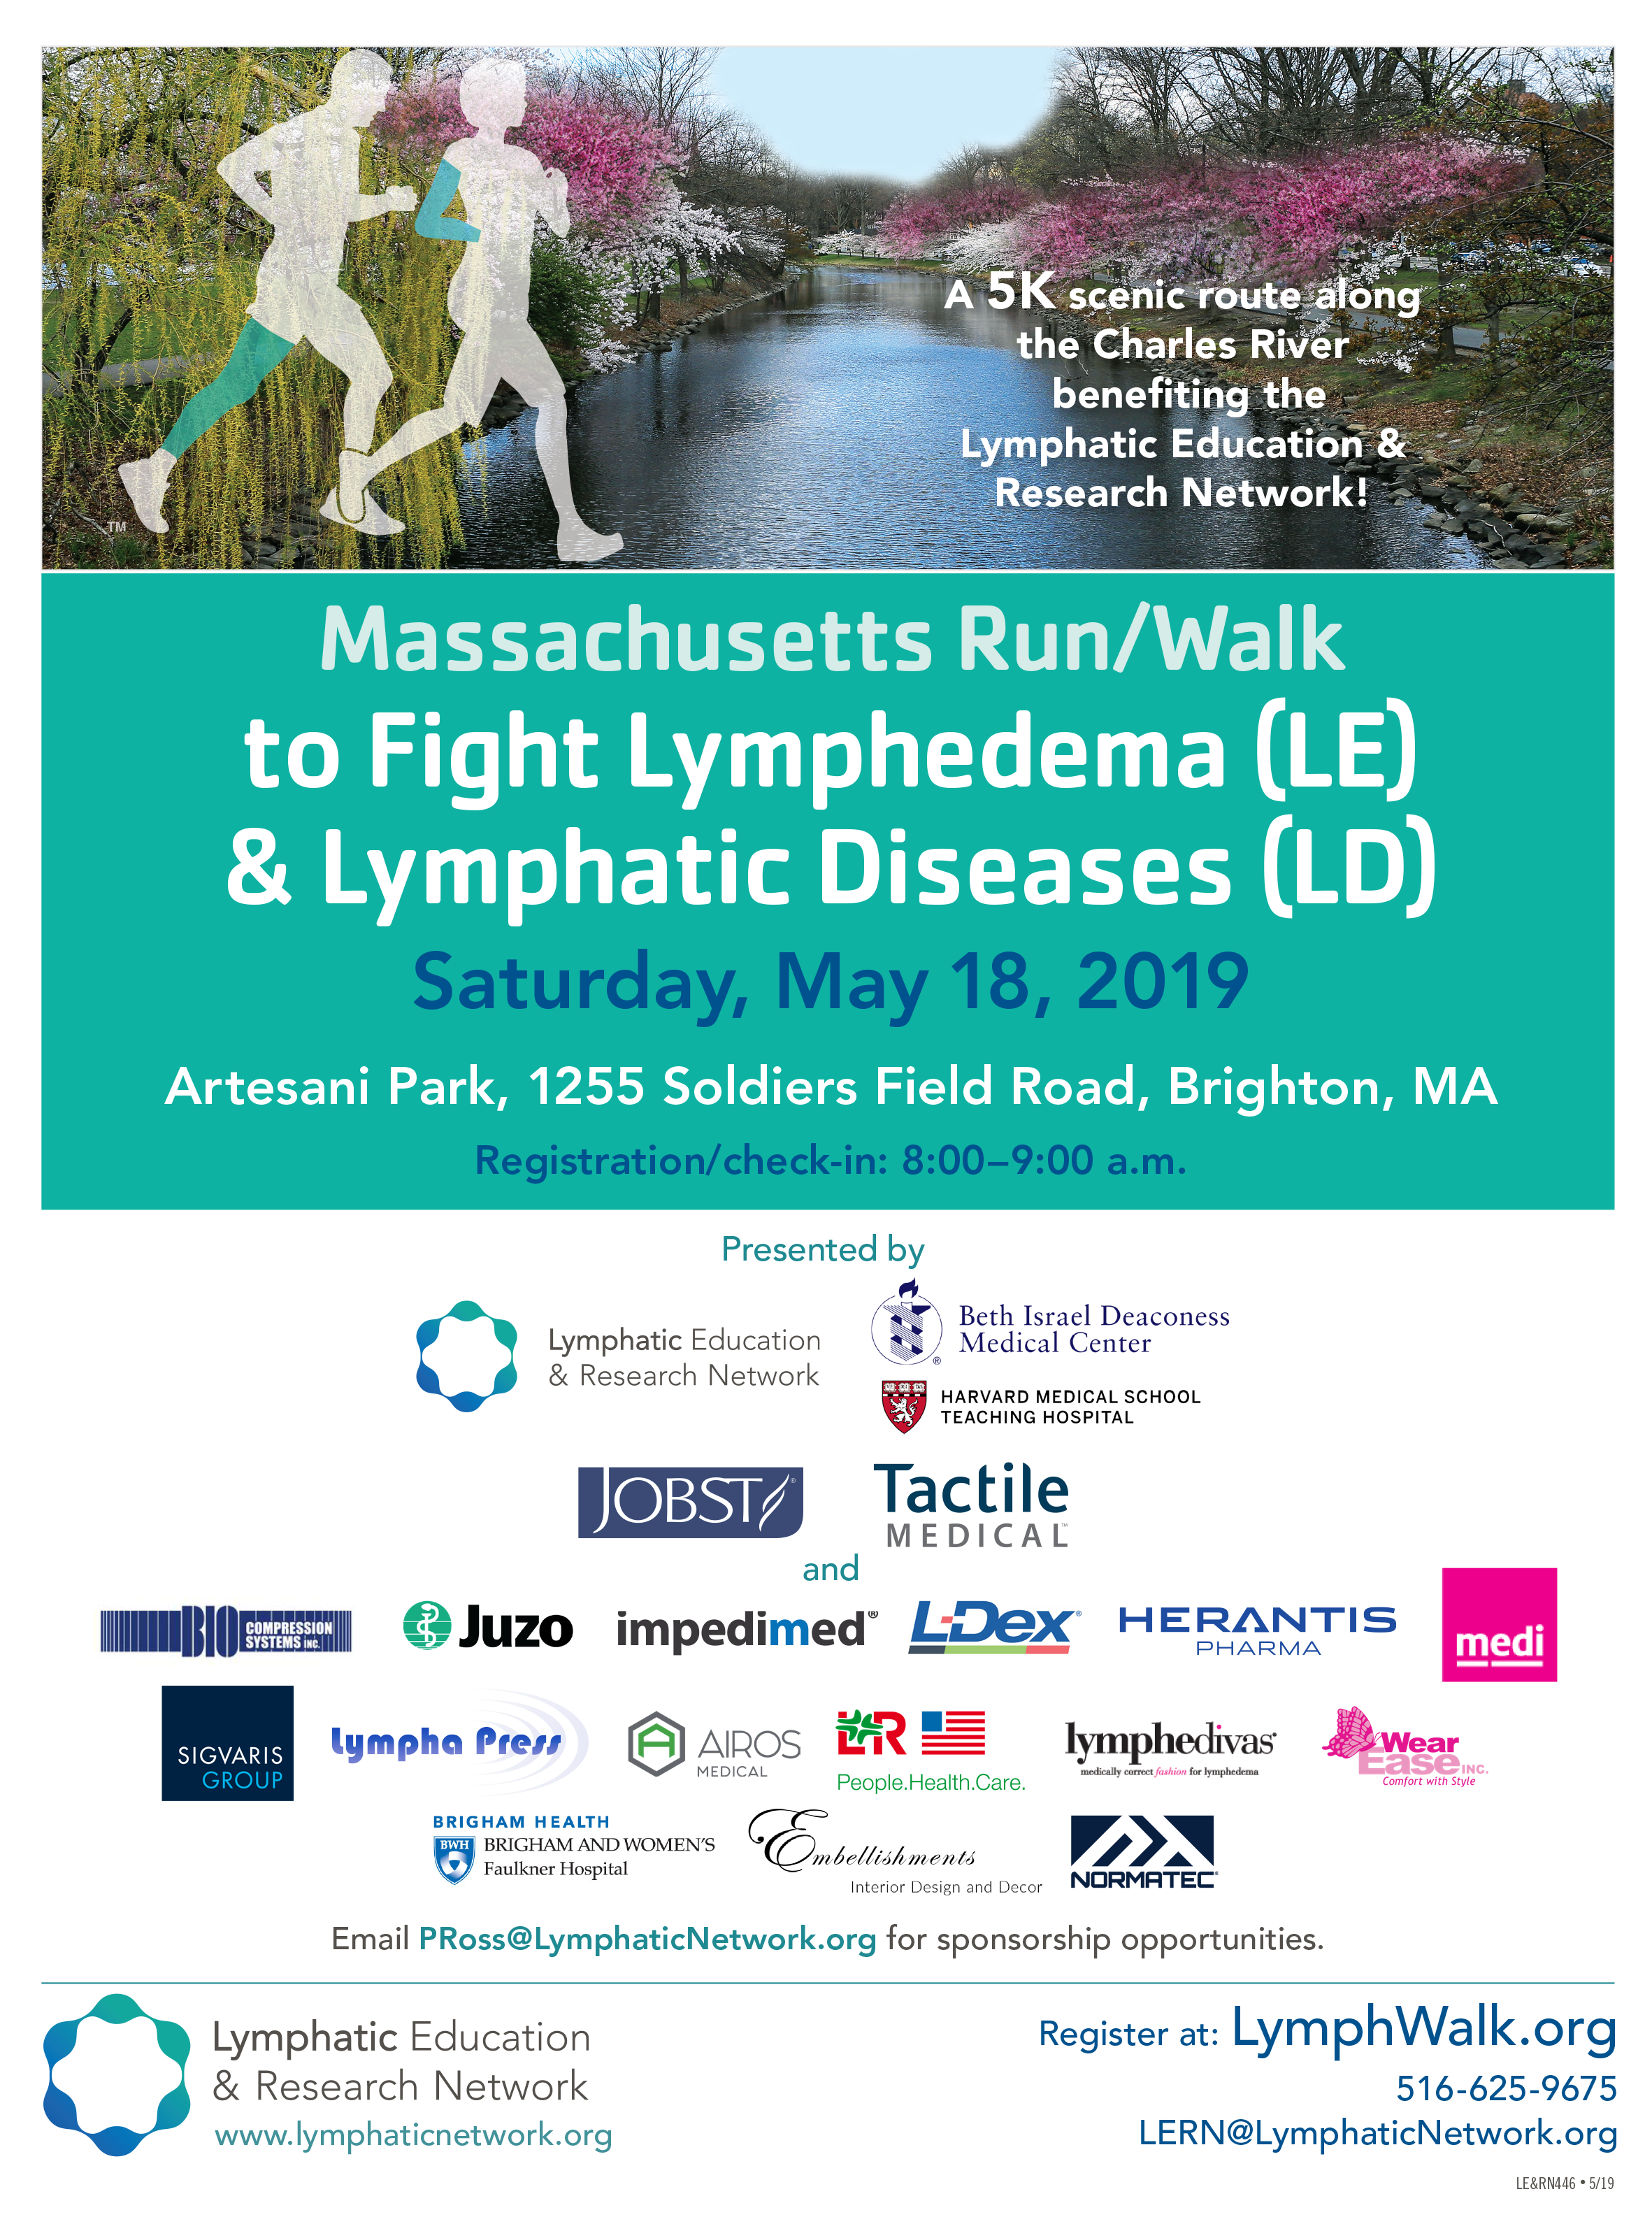 Massachusetts Run/Walk to Fight Lymphedema & Lymphatic